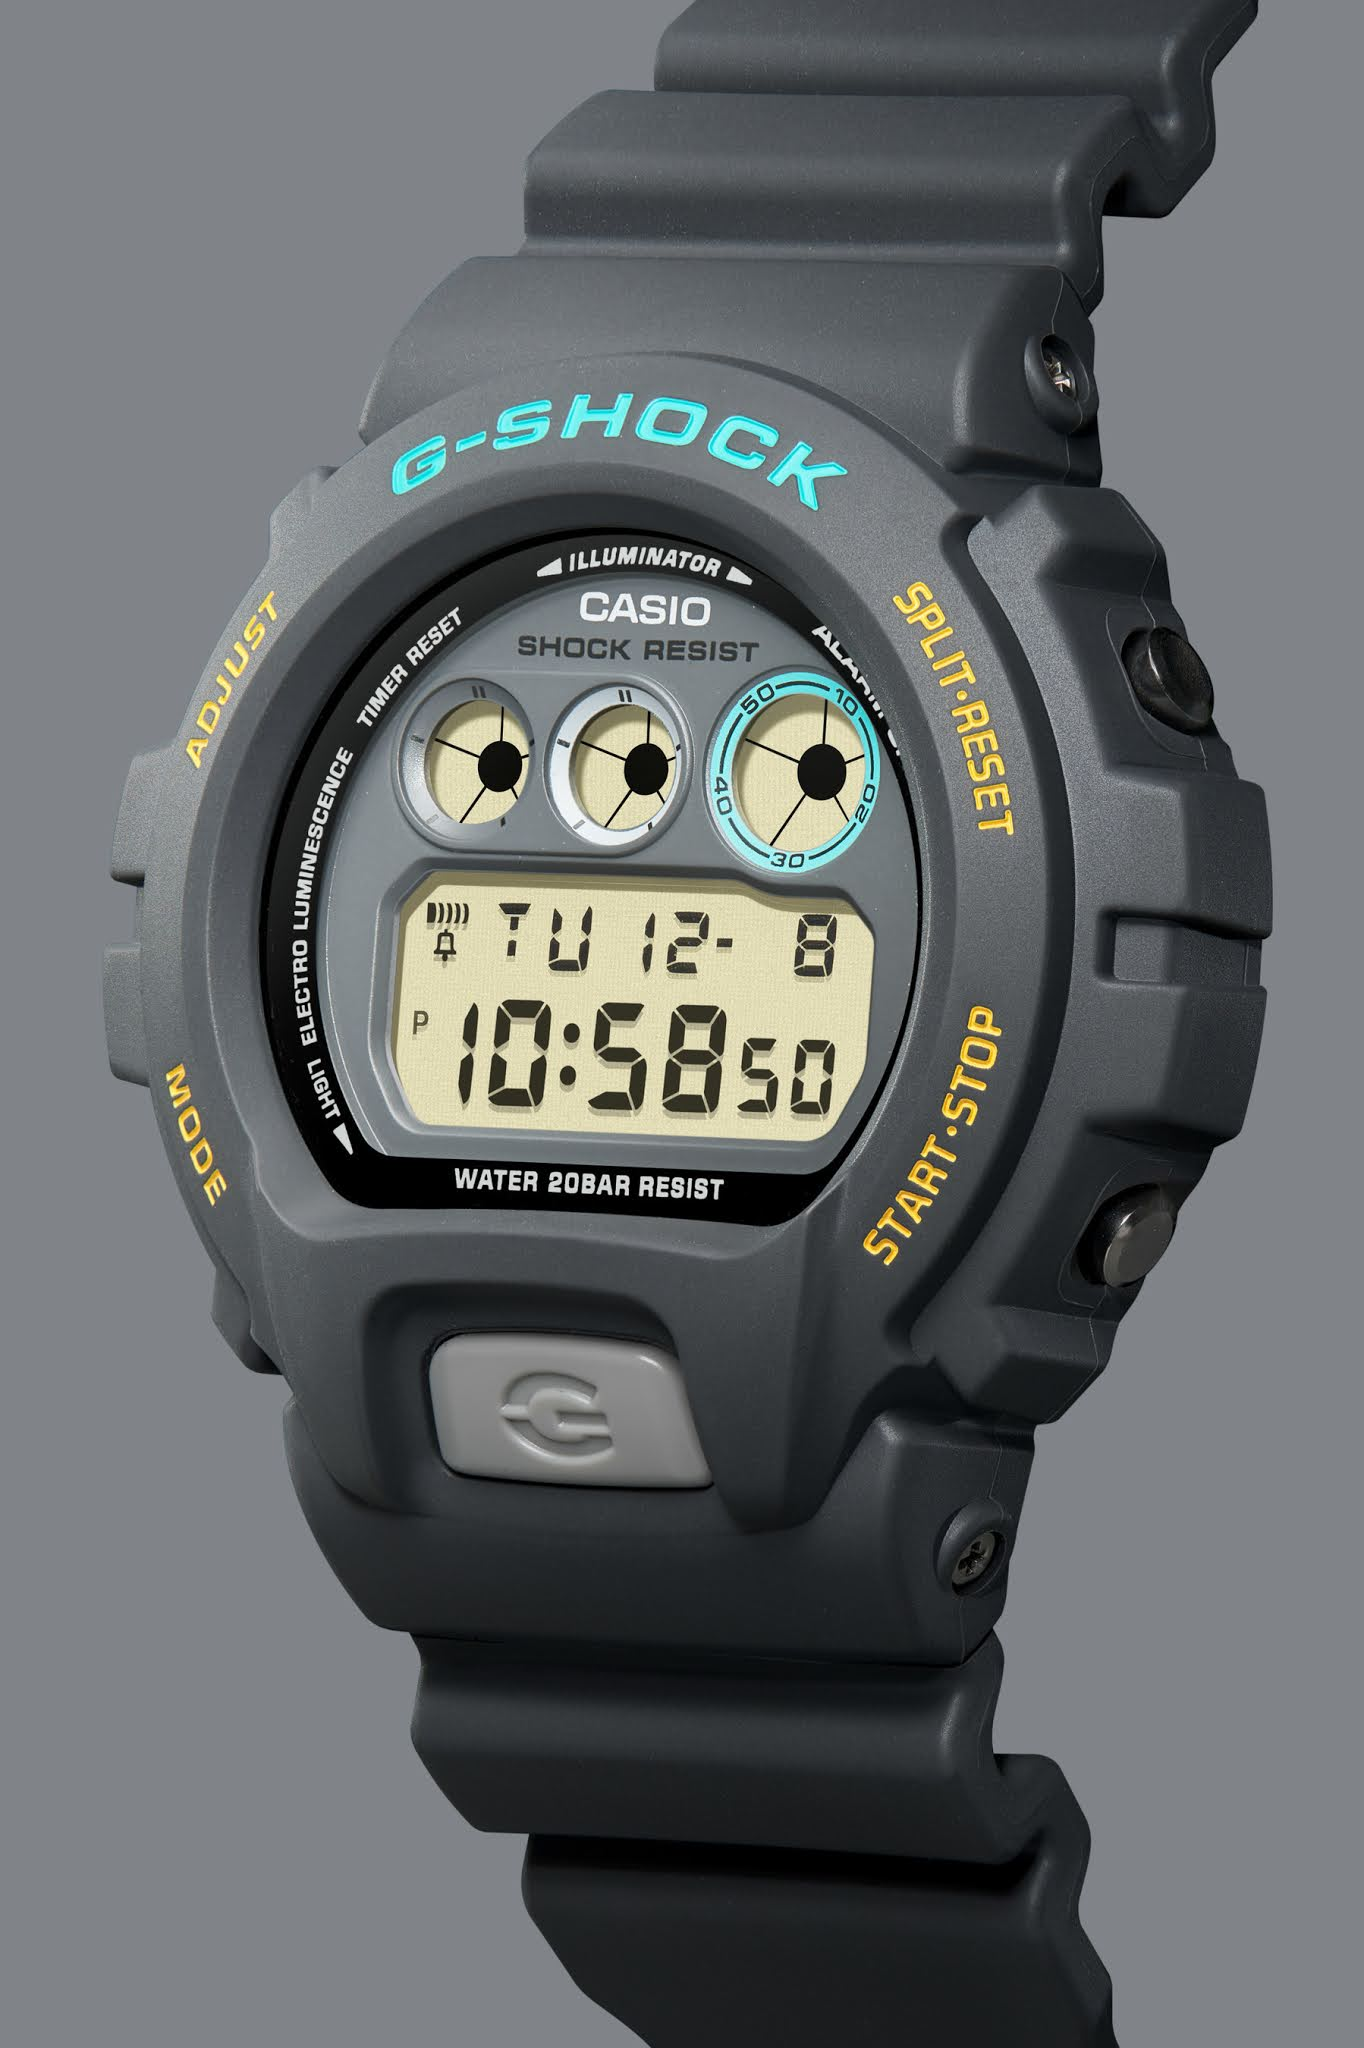 Introducing: The Casio G-SHOCK Ref 6900 by John Mayer